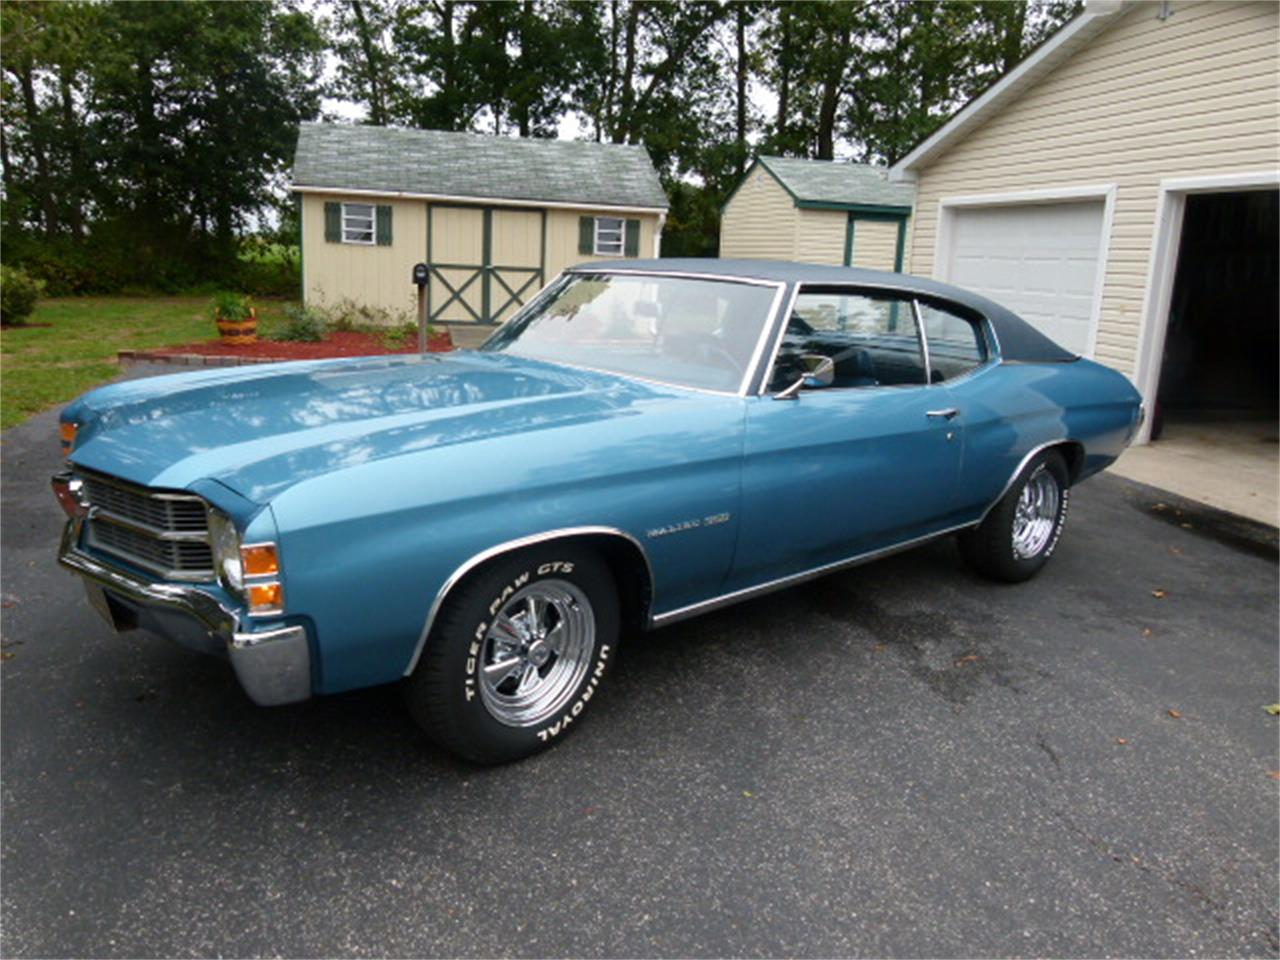 Large Picture of Classic 1971 Chevelle located in Virginia - $29,000.00 Offered by a Private Seller - N3CN